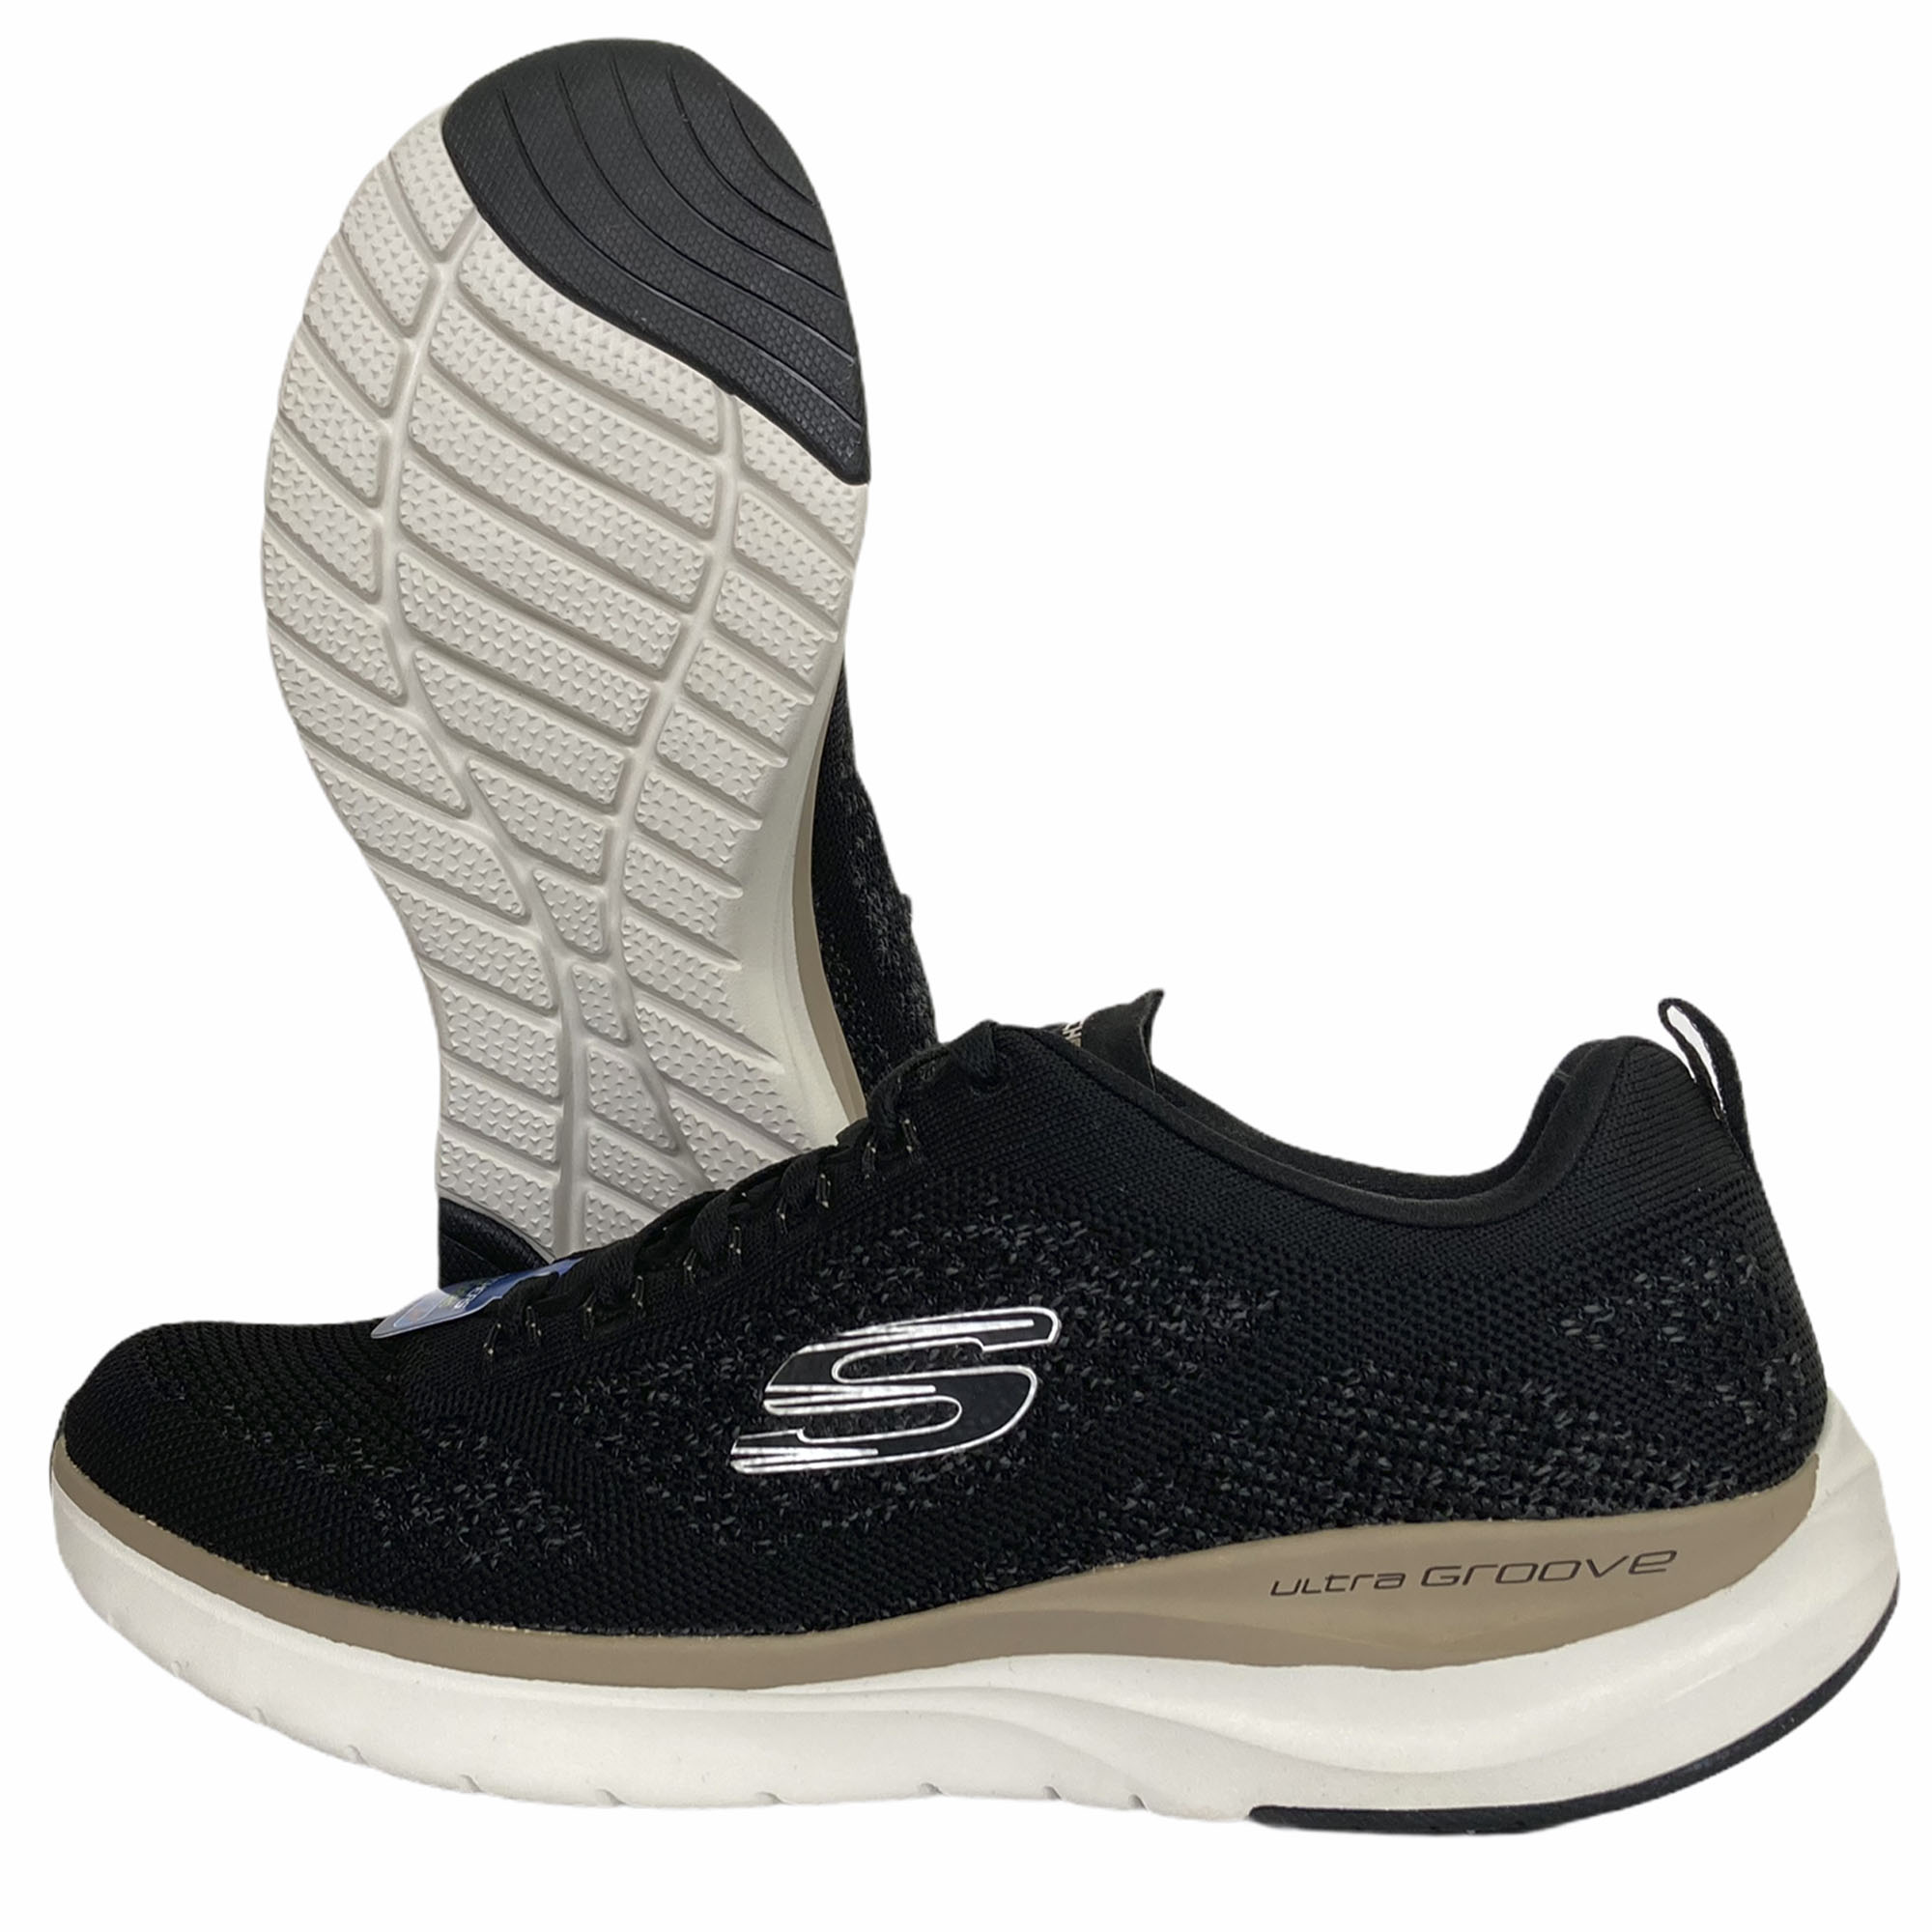 Tênis Skechers Ultra Groove Royal